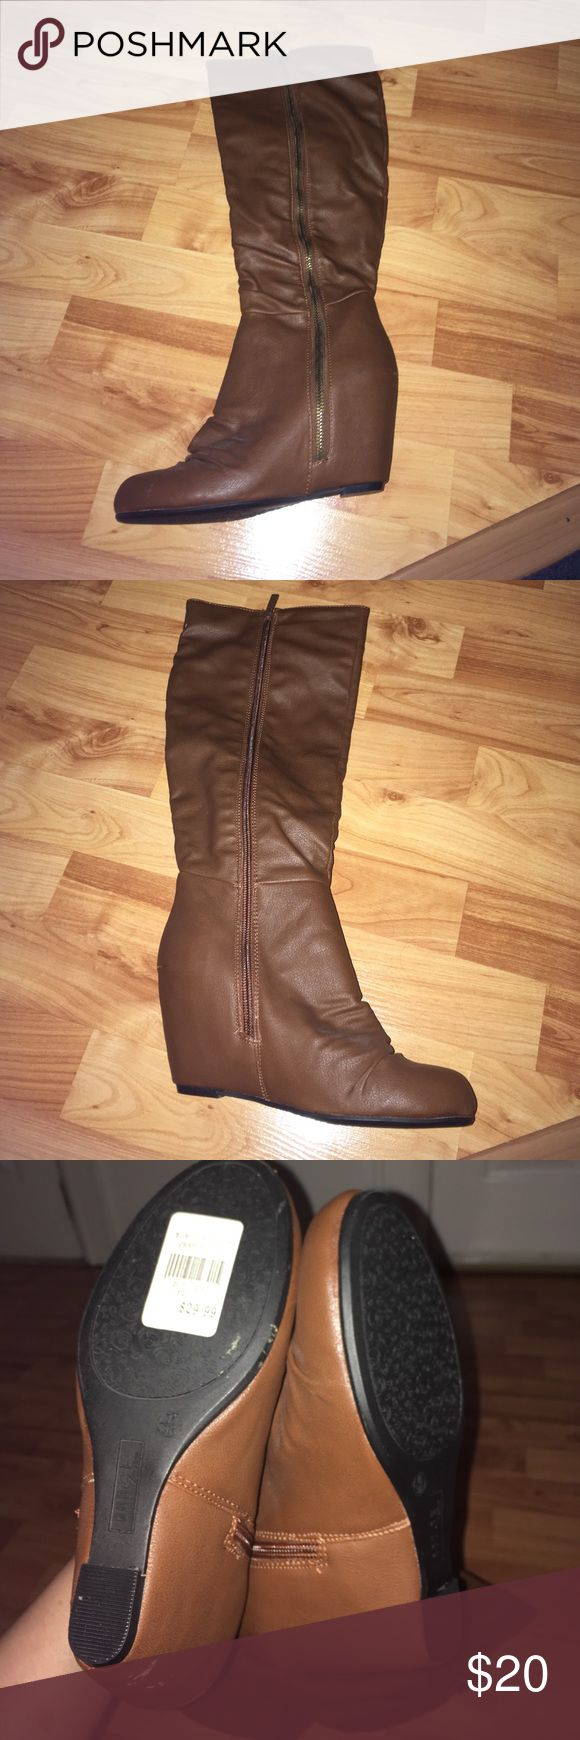 Camel Wedge Boots Camel Wedge Boots / never worn but was bought with patches on back of one (see pic) Shoes Heeled Boots